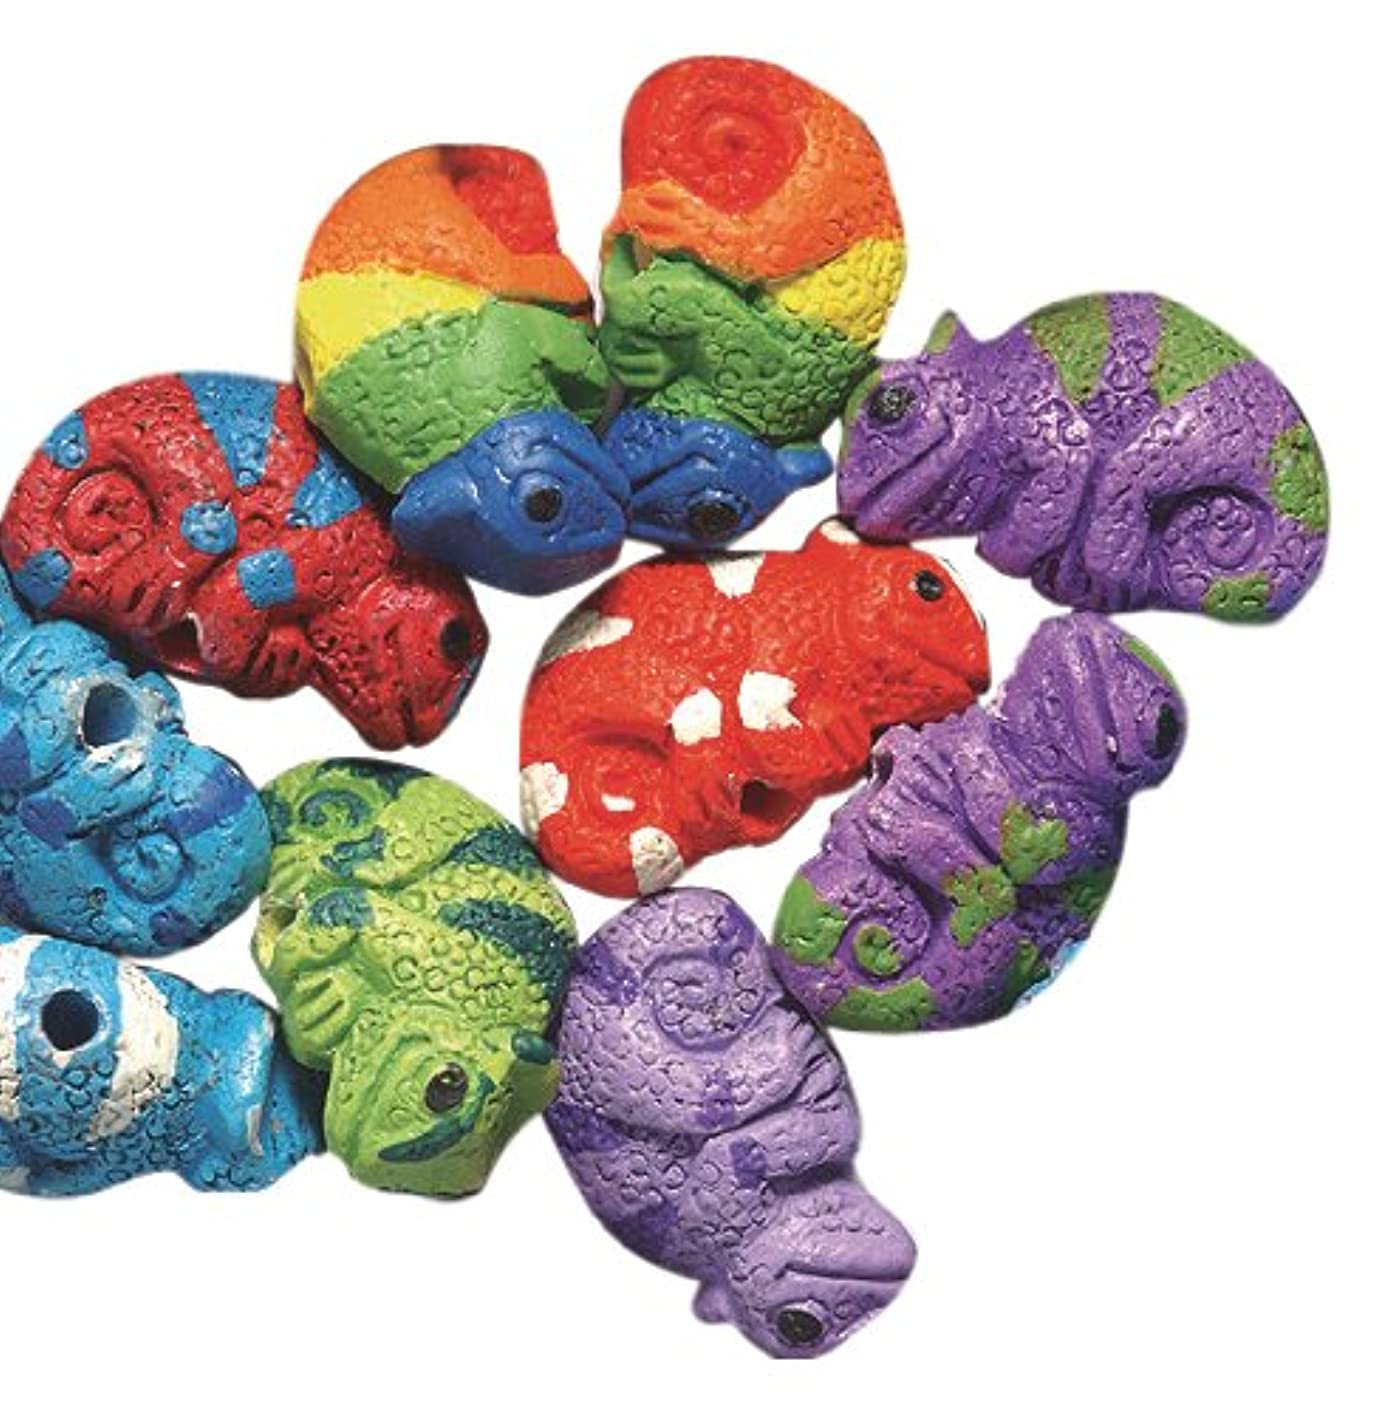 Peruvian 10 by 15mm Hand Crafted Ceramic Chameleon Beads, Assorted, 10 per Pack